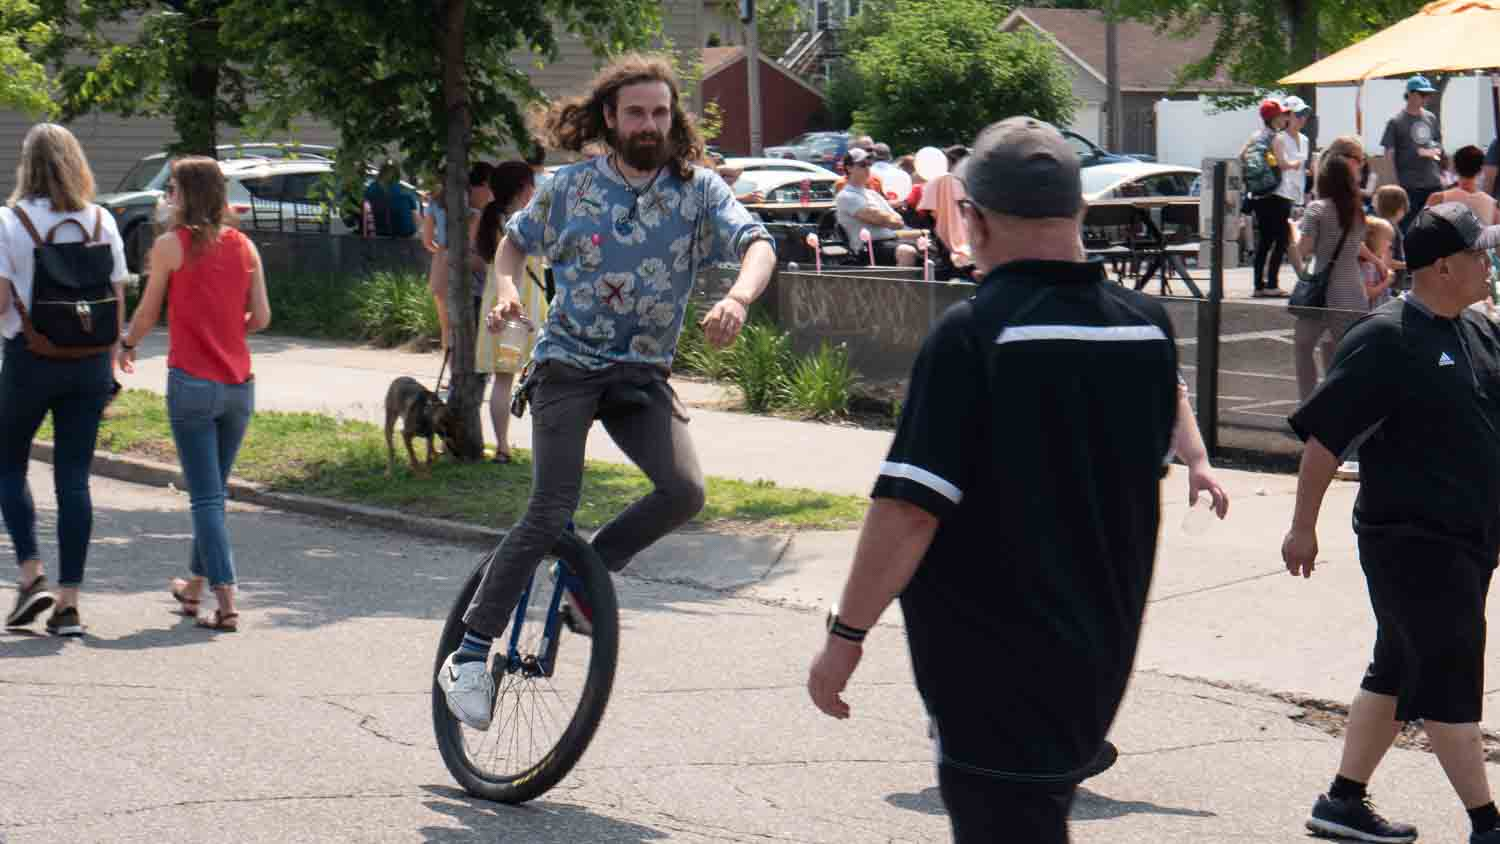 Joey Crowley riding Unicycle in Minneapolis